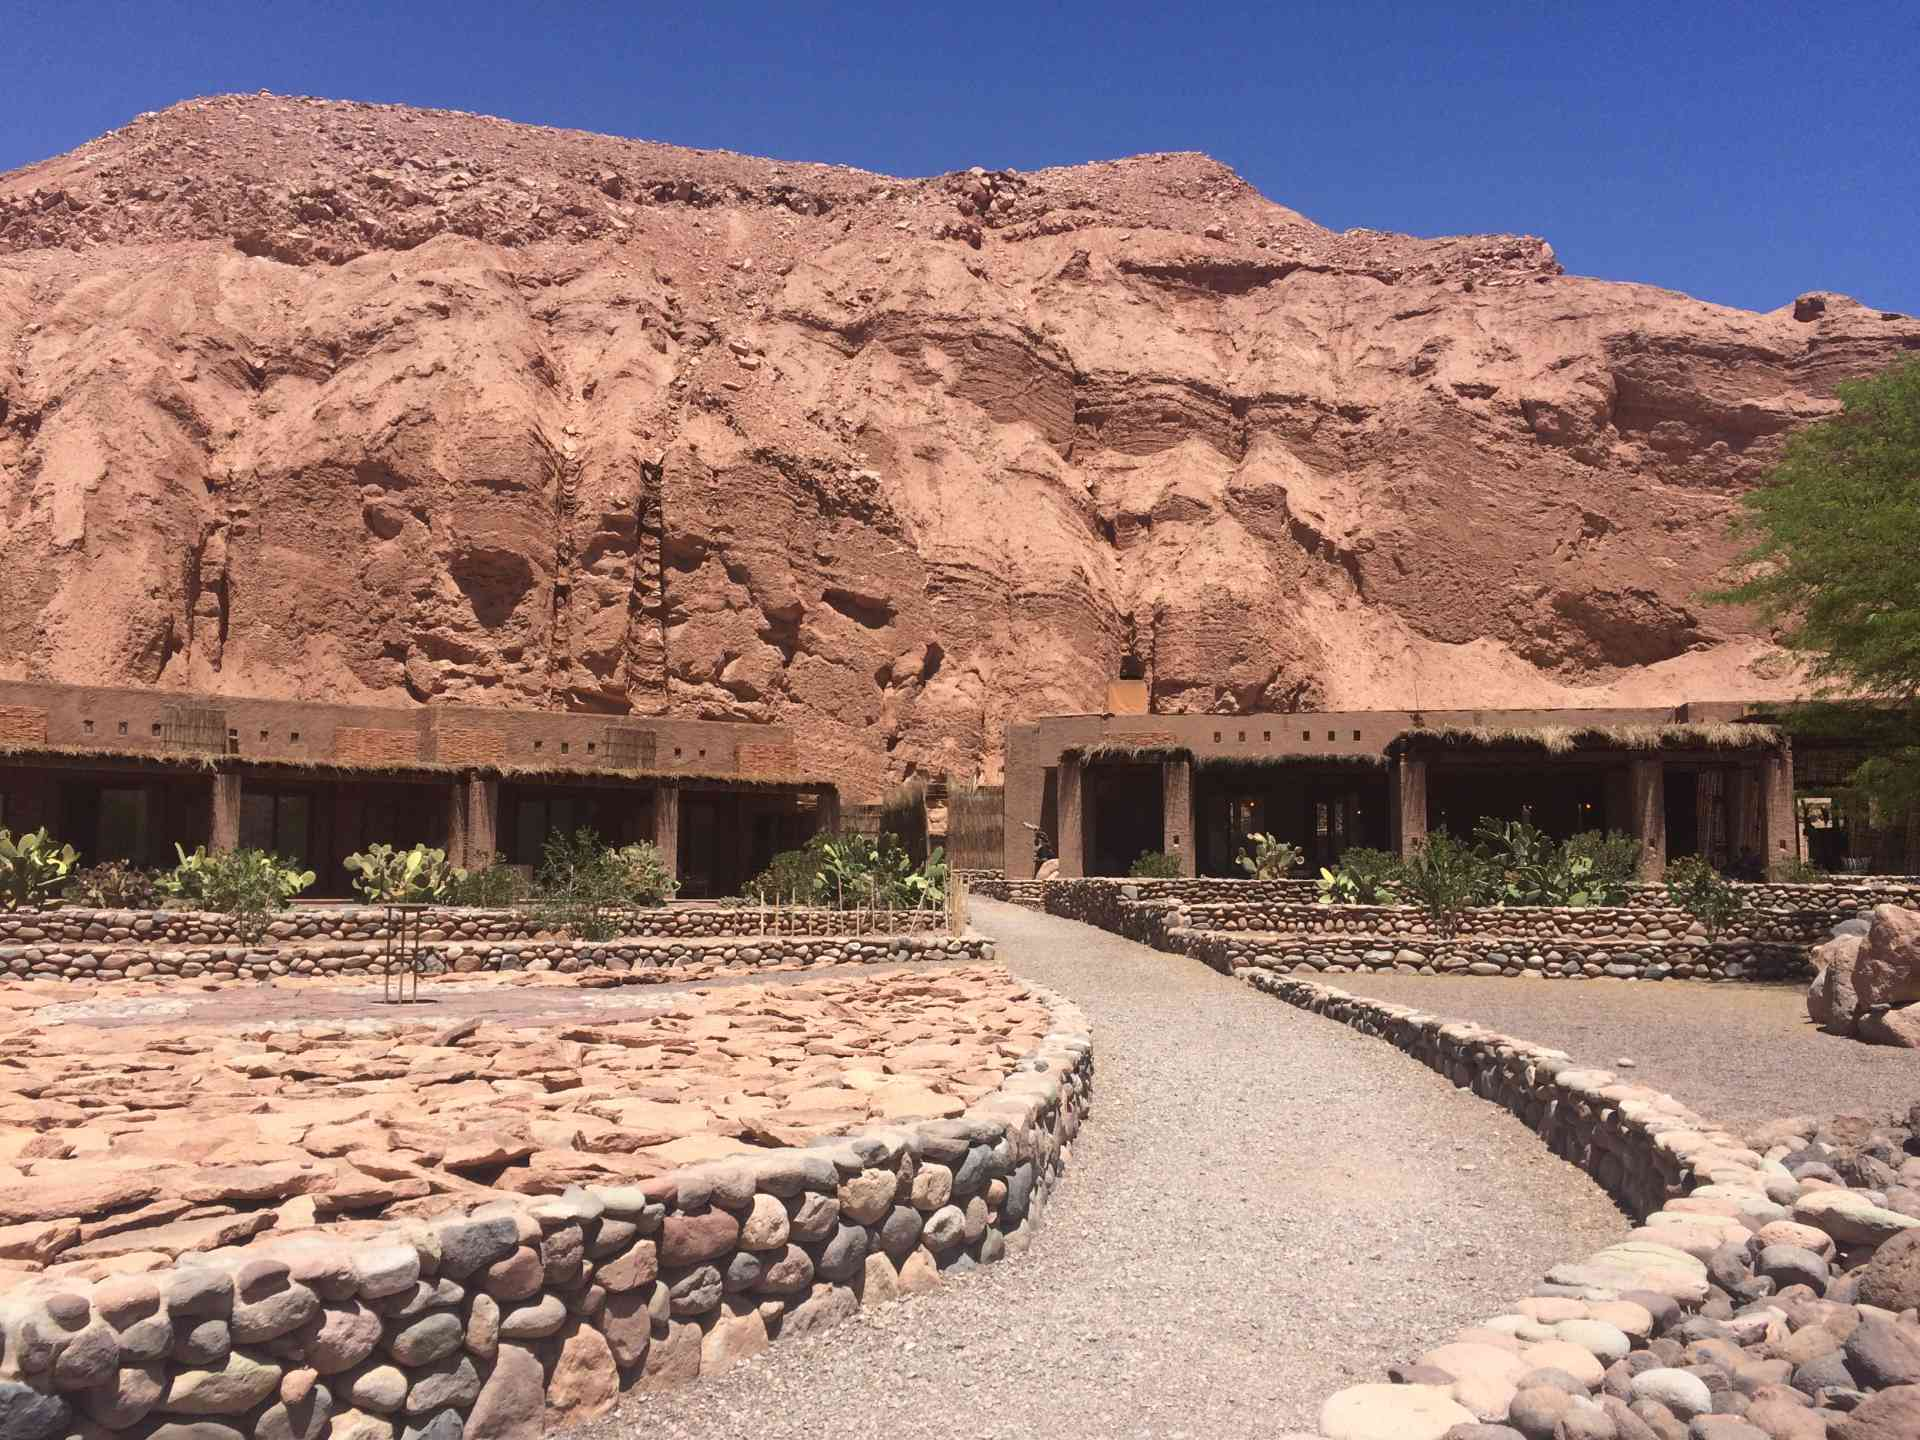 Alto Atacama Desert Lodge & Spa, Chile by James Atwell